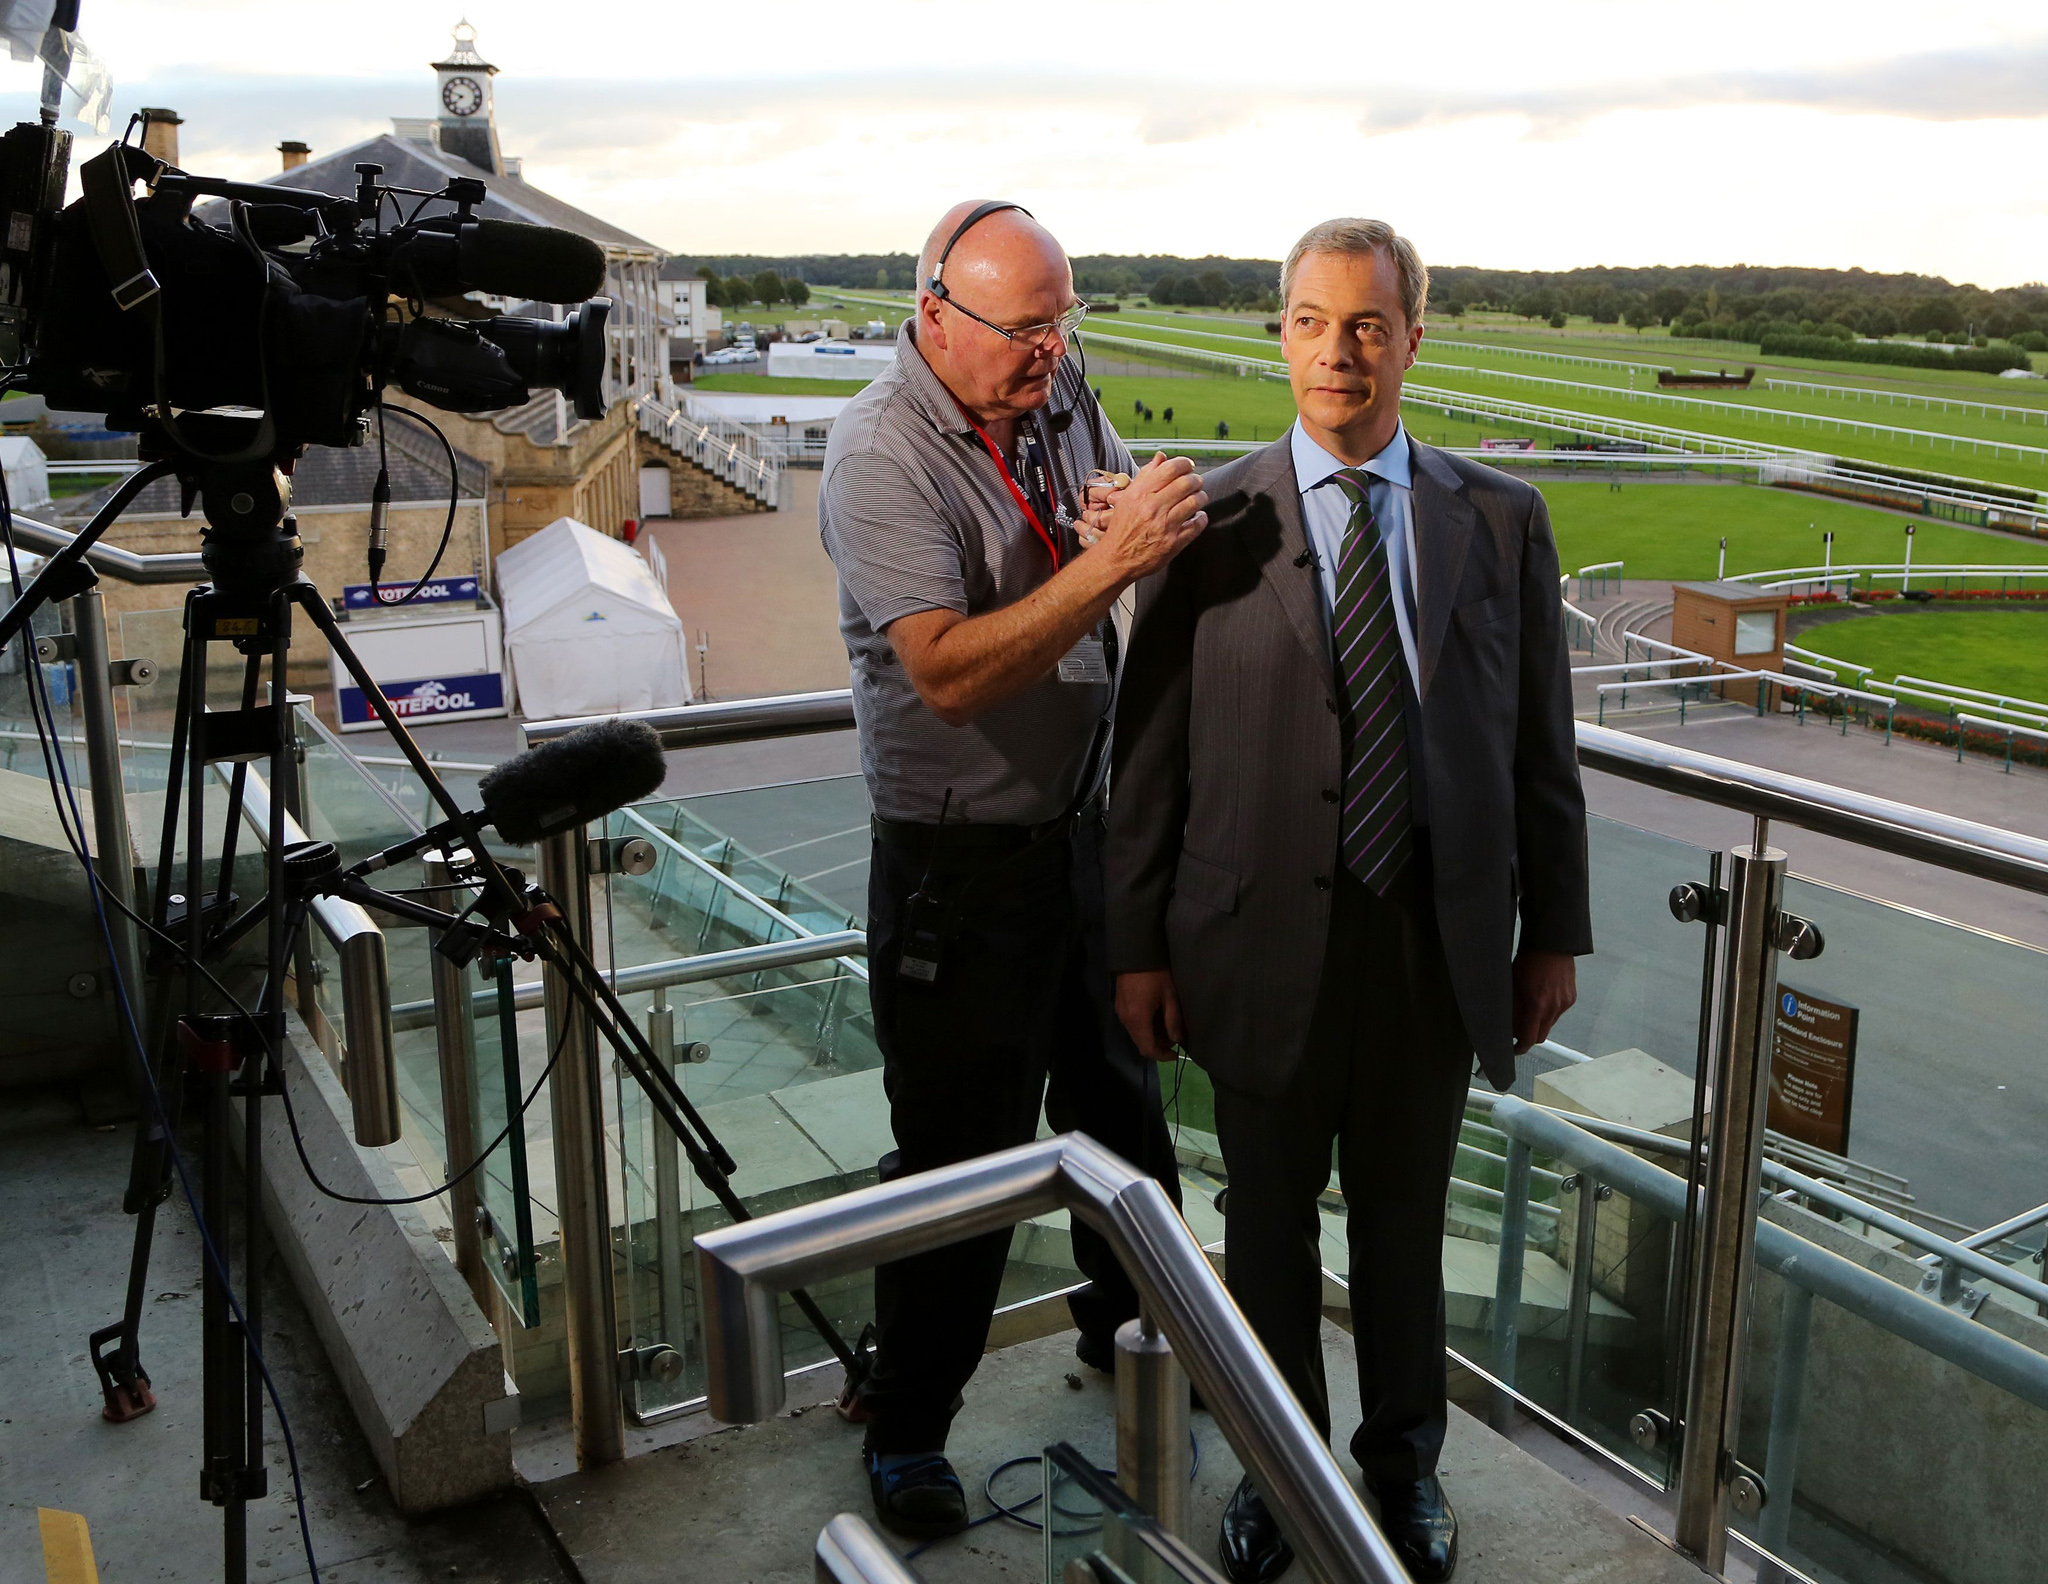 Ukip leader Nigel Farage during morning media interviews ahead of the Ukip annual conference at Doncaster racecourse in South Yorkshire. PRESS ASSOCIATION Photo. Picture date: Friday September 26, 2014. See PA story POLITICS Ukip. Photo credit should read: Gareth Fuller/PA Wire